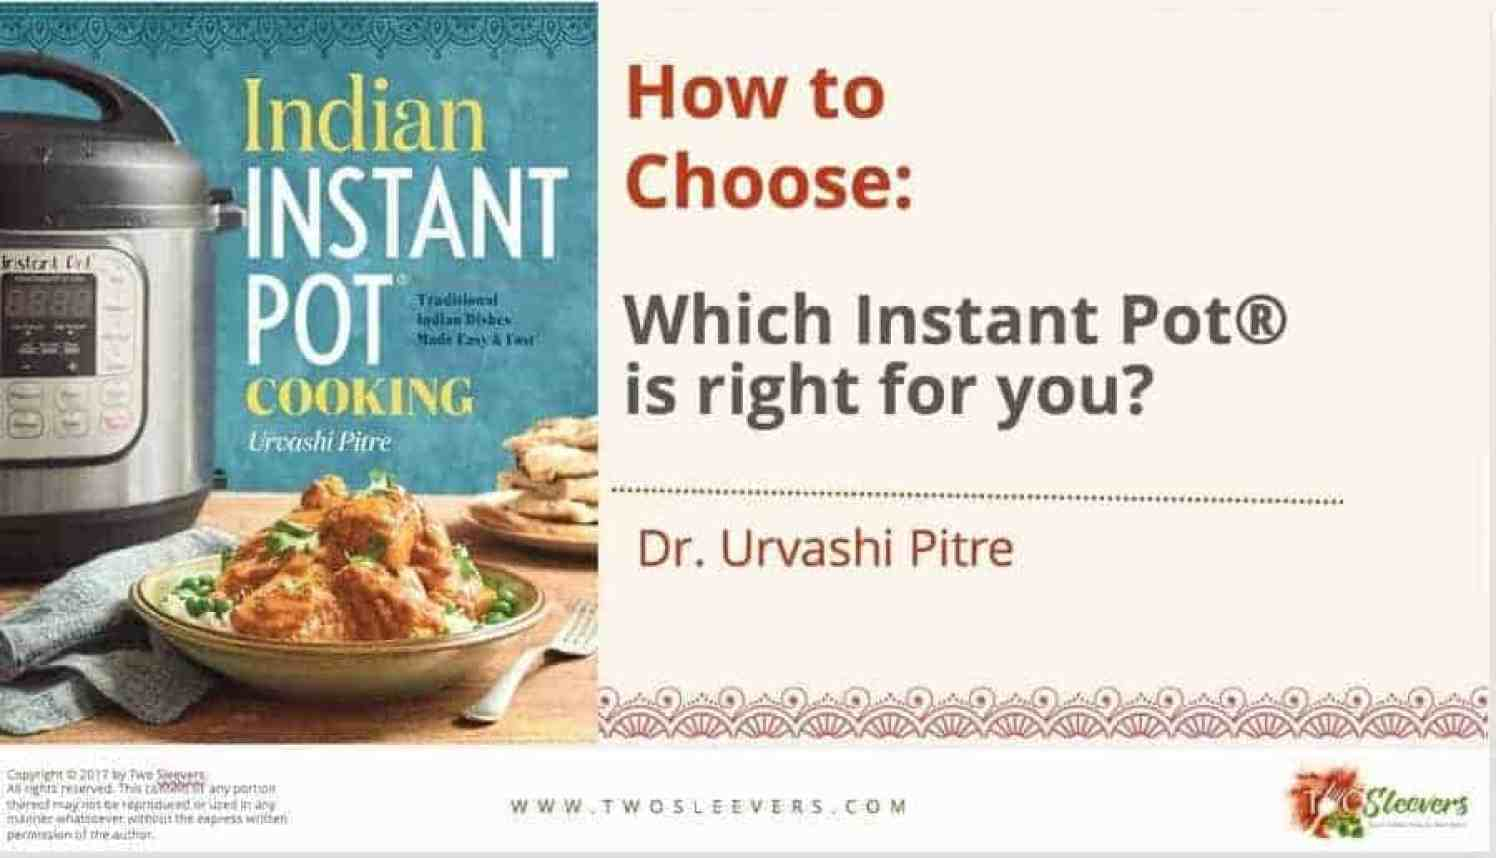 Easy, simple guide to choosing the best Instant Pot for you, with comparisons of different model types.